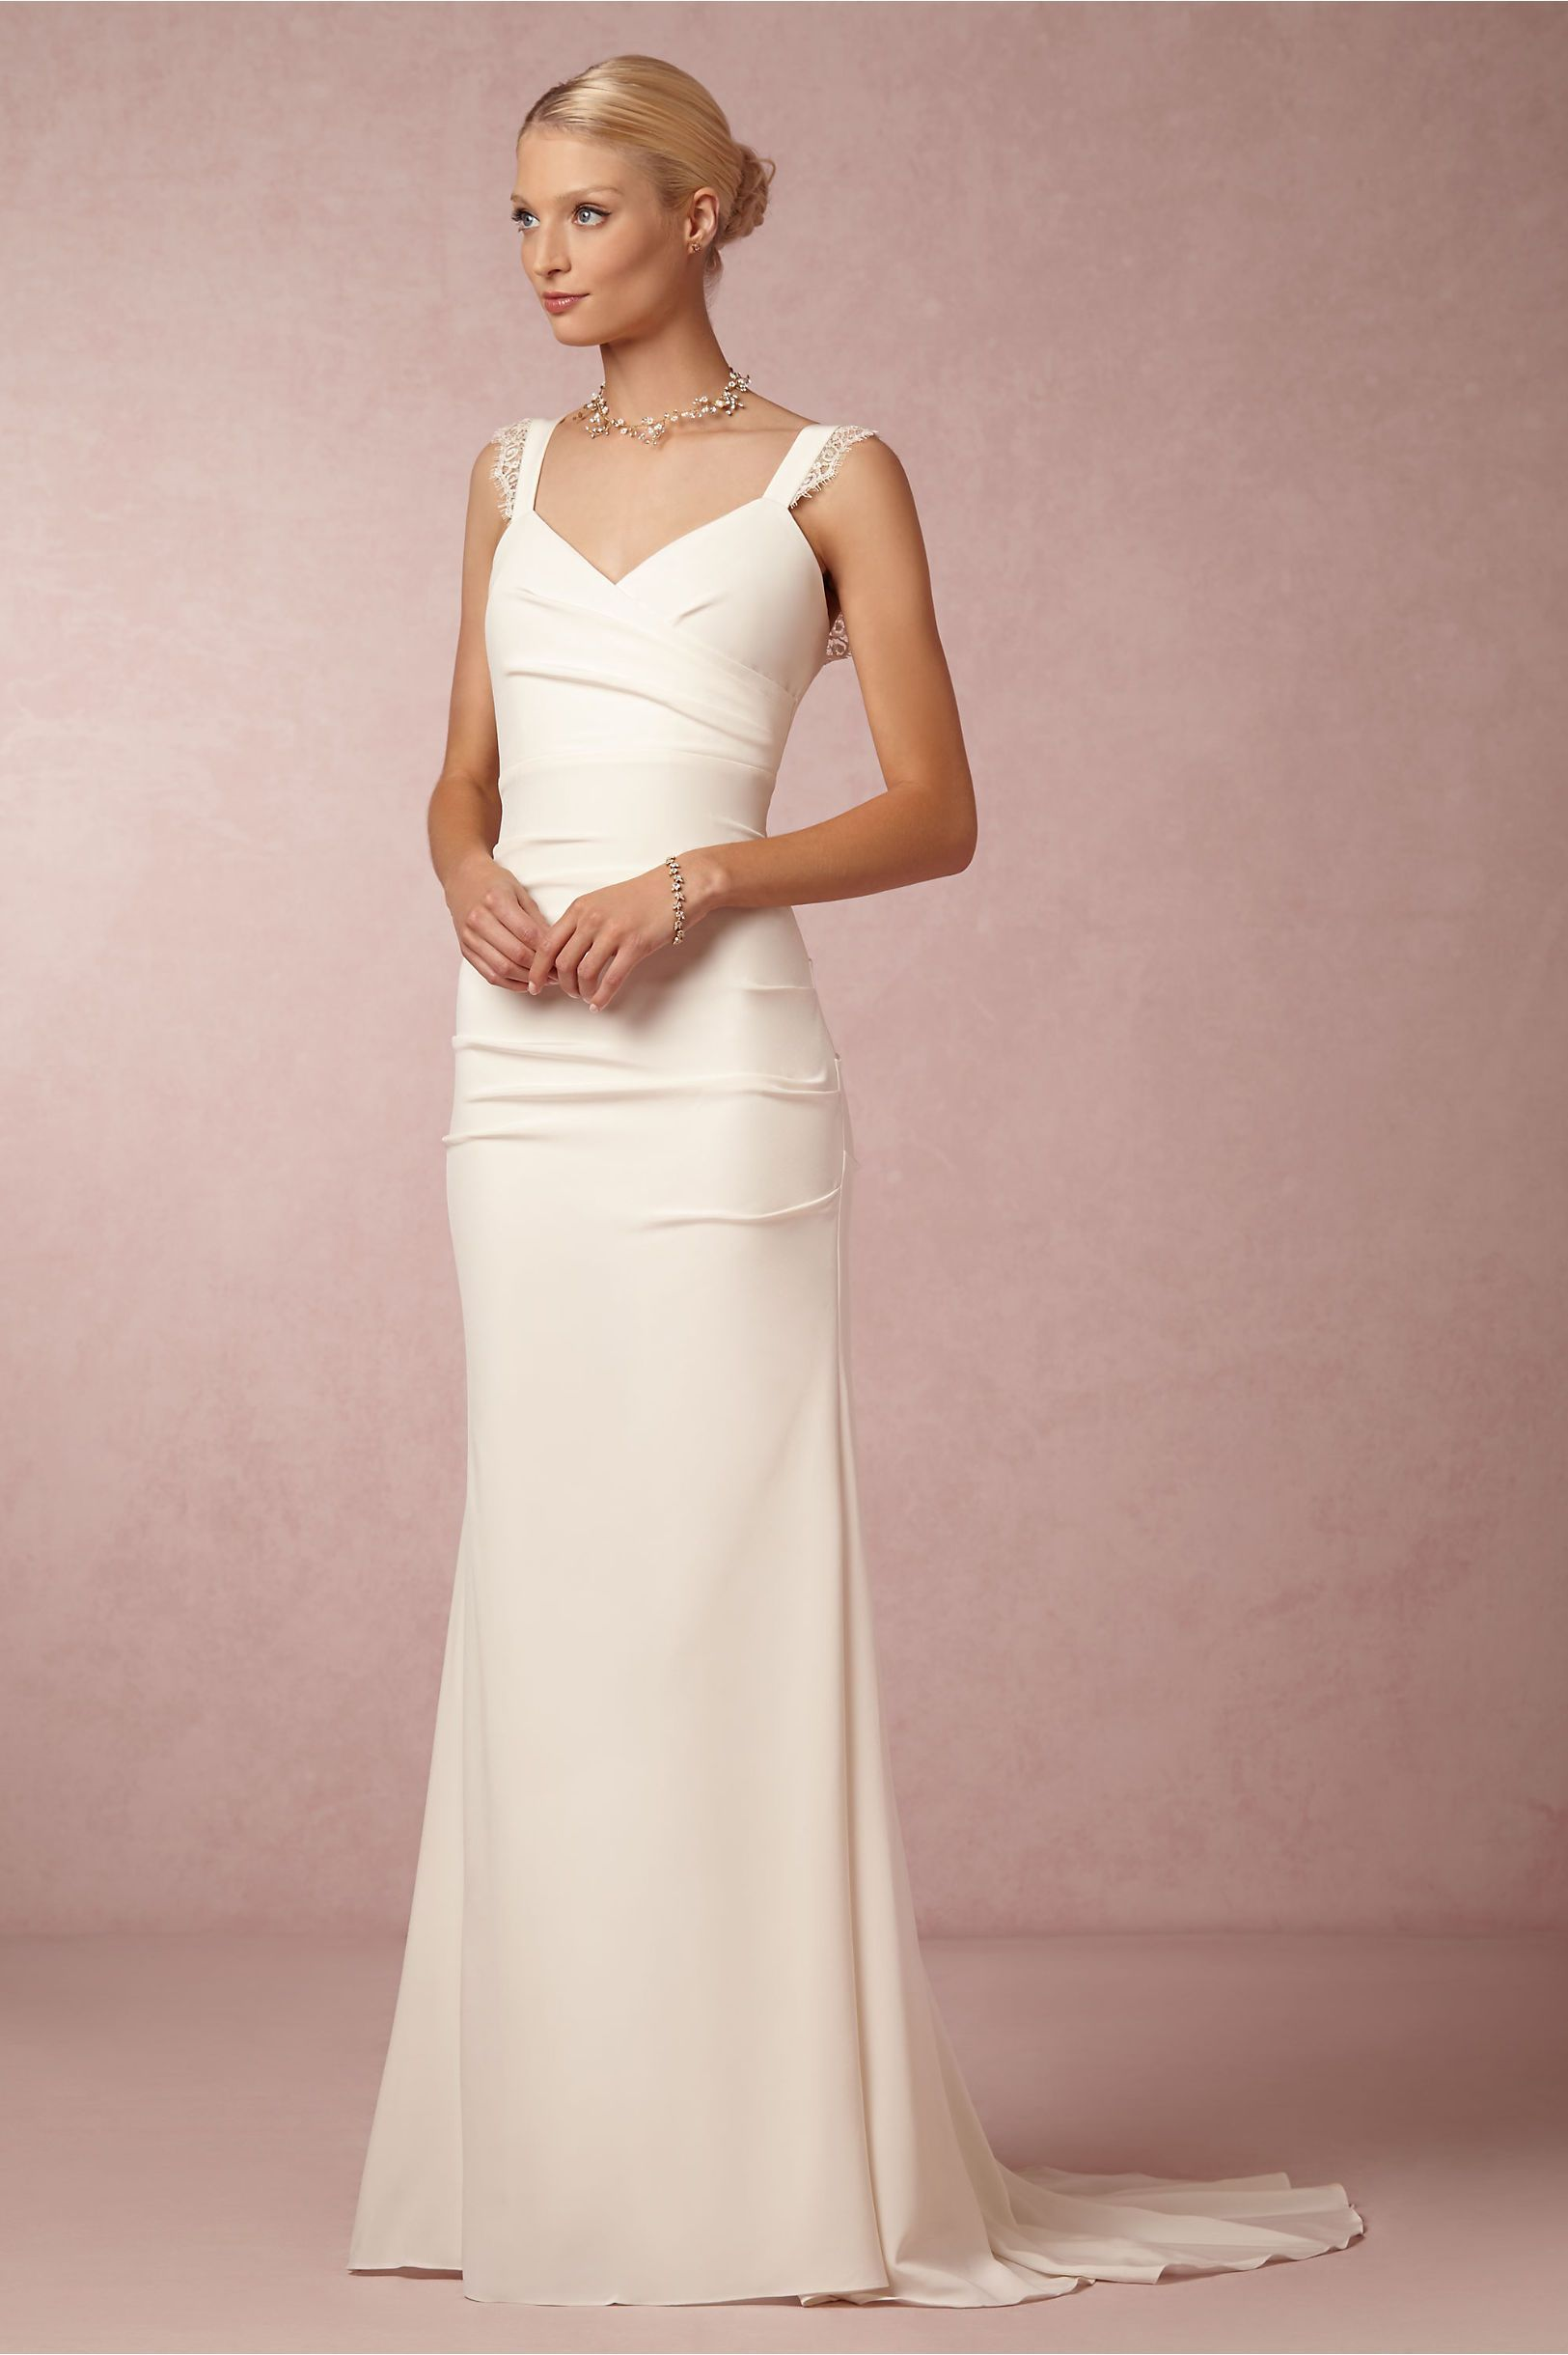 BHLDN Nicole Miller - Alexis Sample Gown | Products | Pinterest